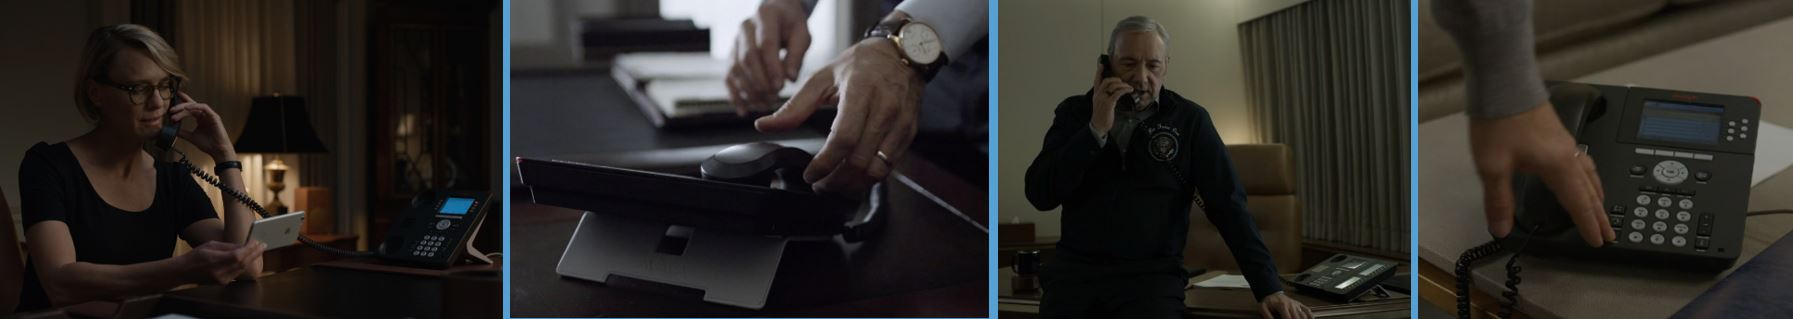 Avaya #4 4 10 most visible product placement brand in HOUSE OF CARDS Concave Brand Tracking